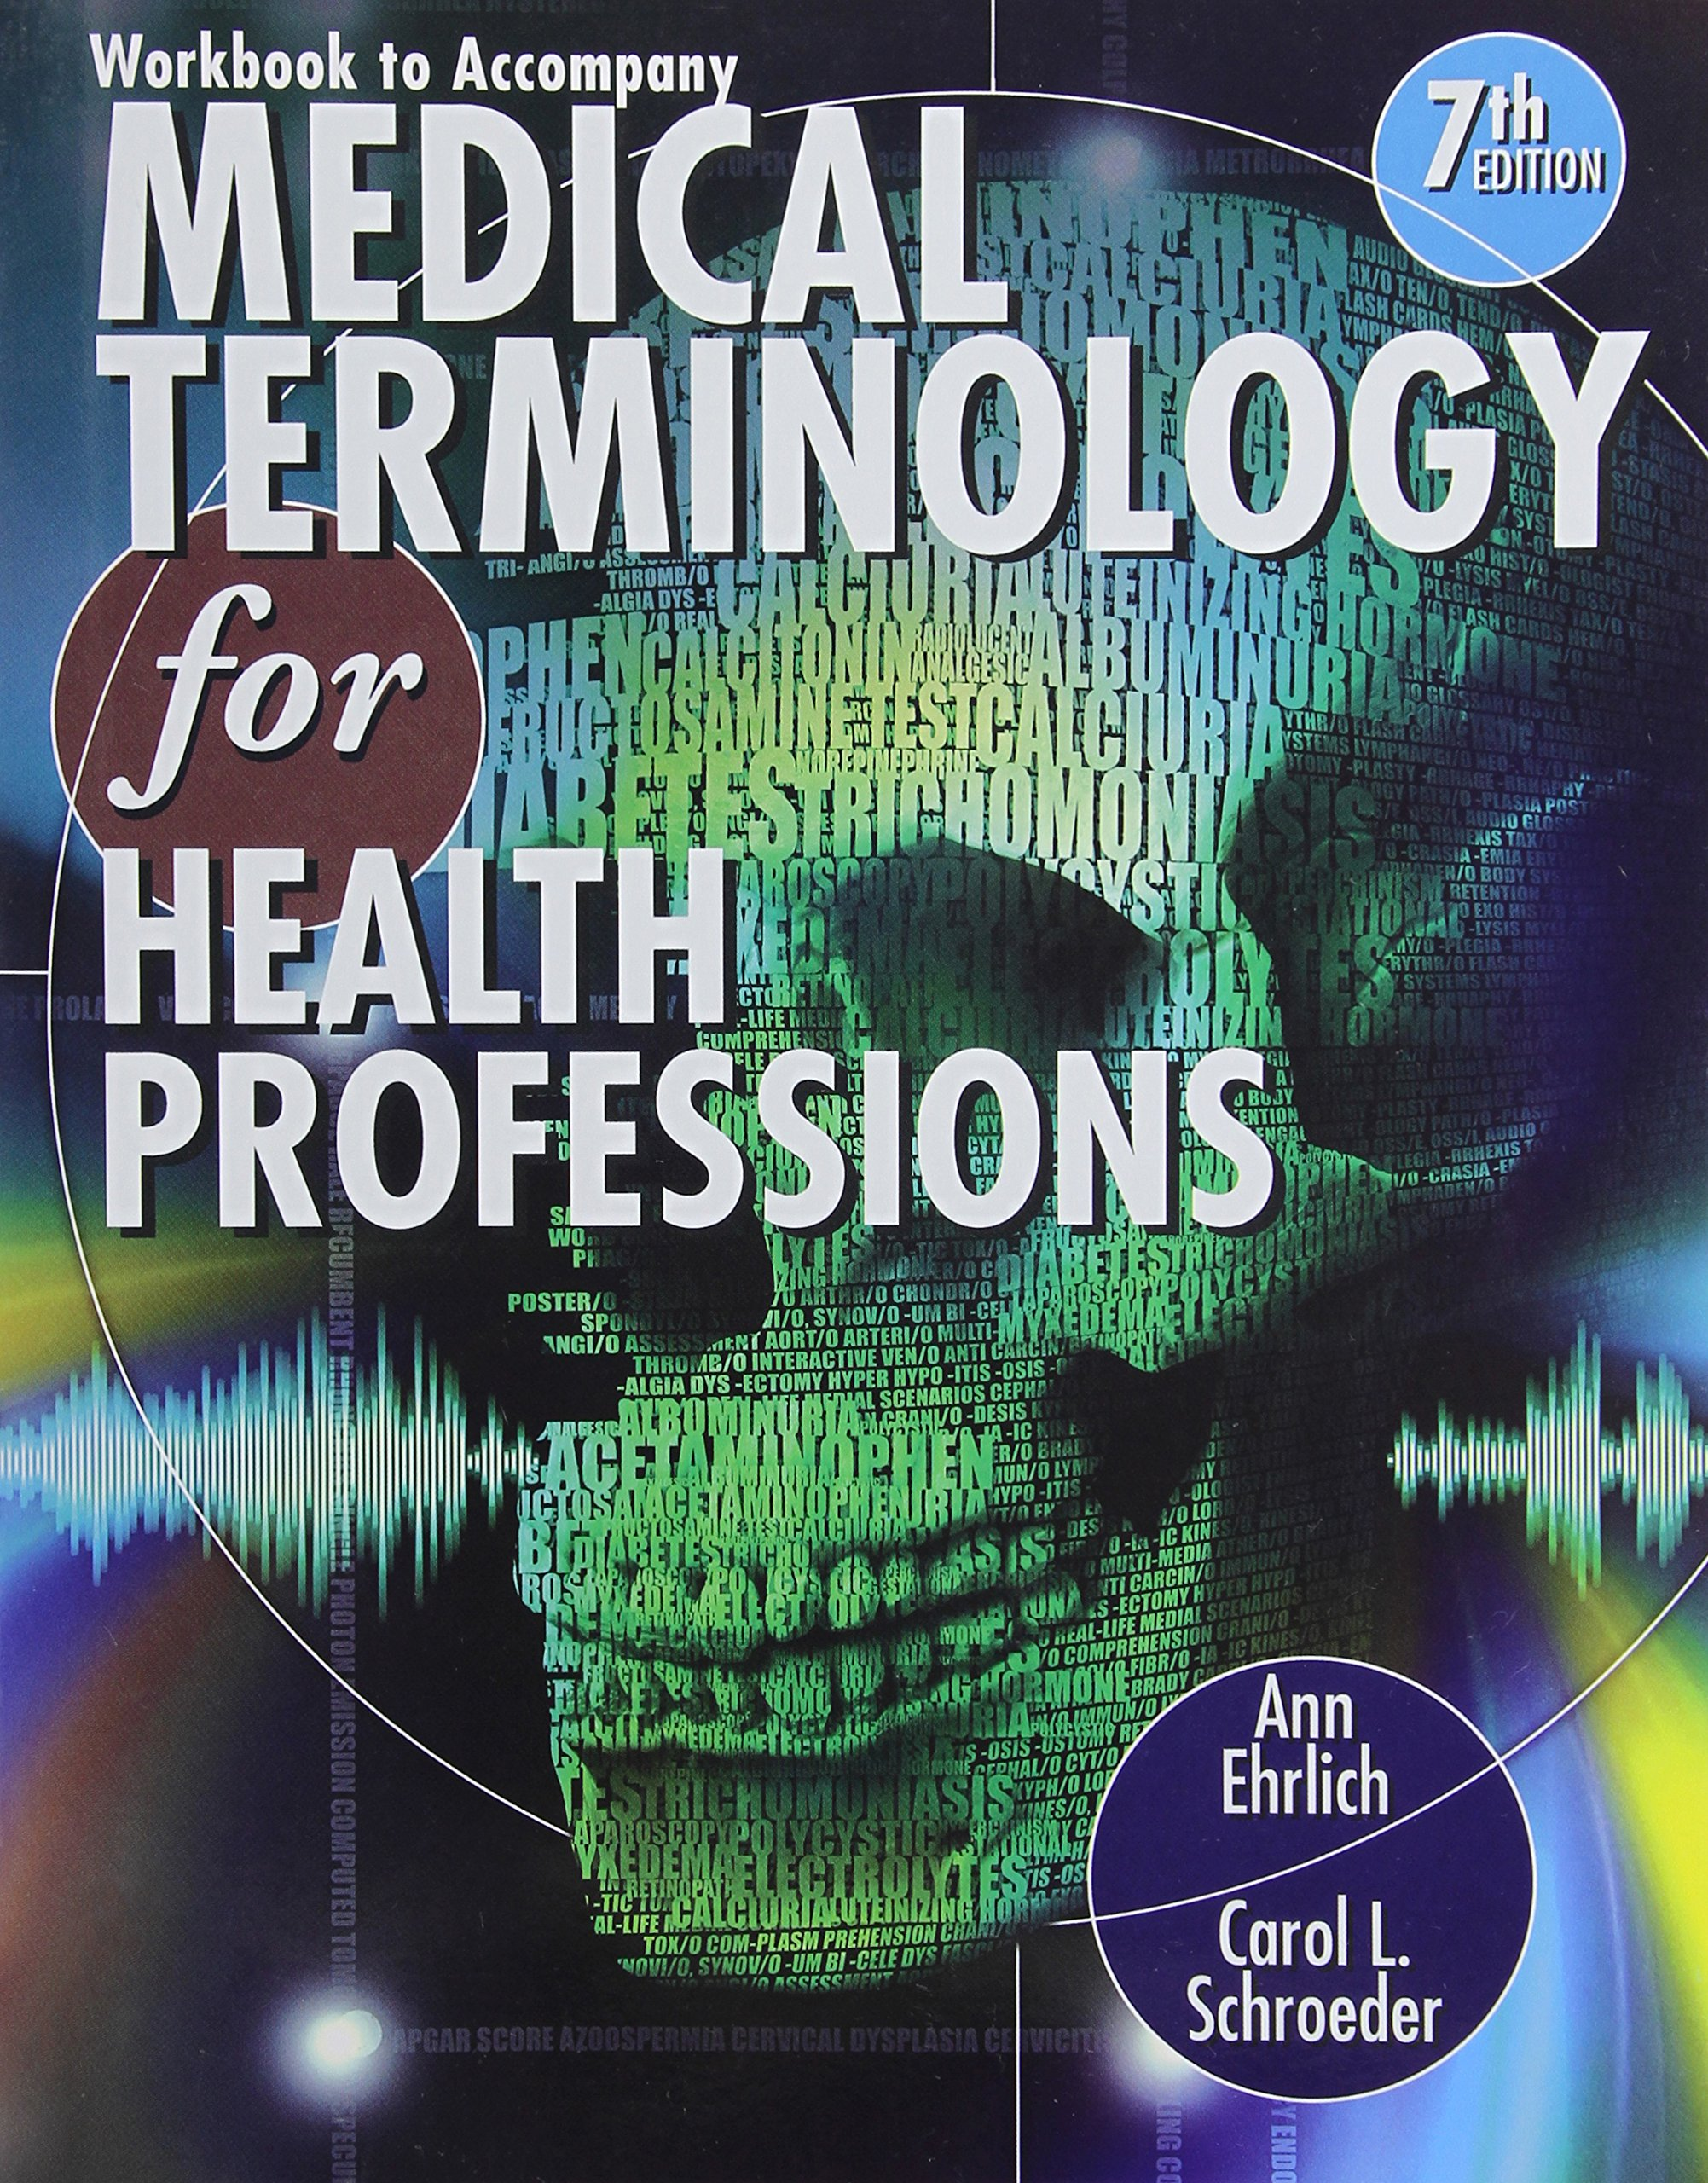 Anatomy coloring book for health professions - Workbook For Ehrlich Schroeder S Medical Terminology For Health Professions 7th Ann Ehrlich Carol Schroeder 9781111543280 Books Amazon Ca